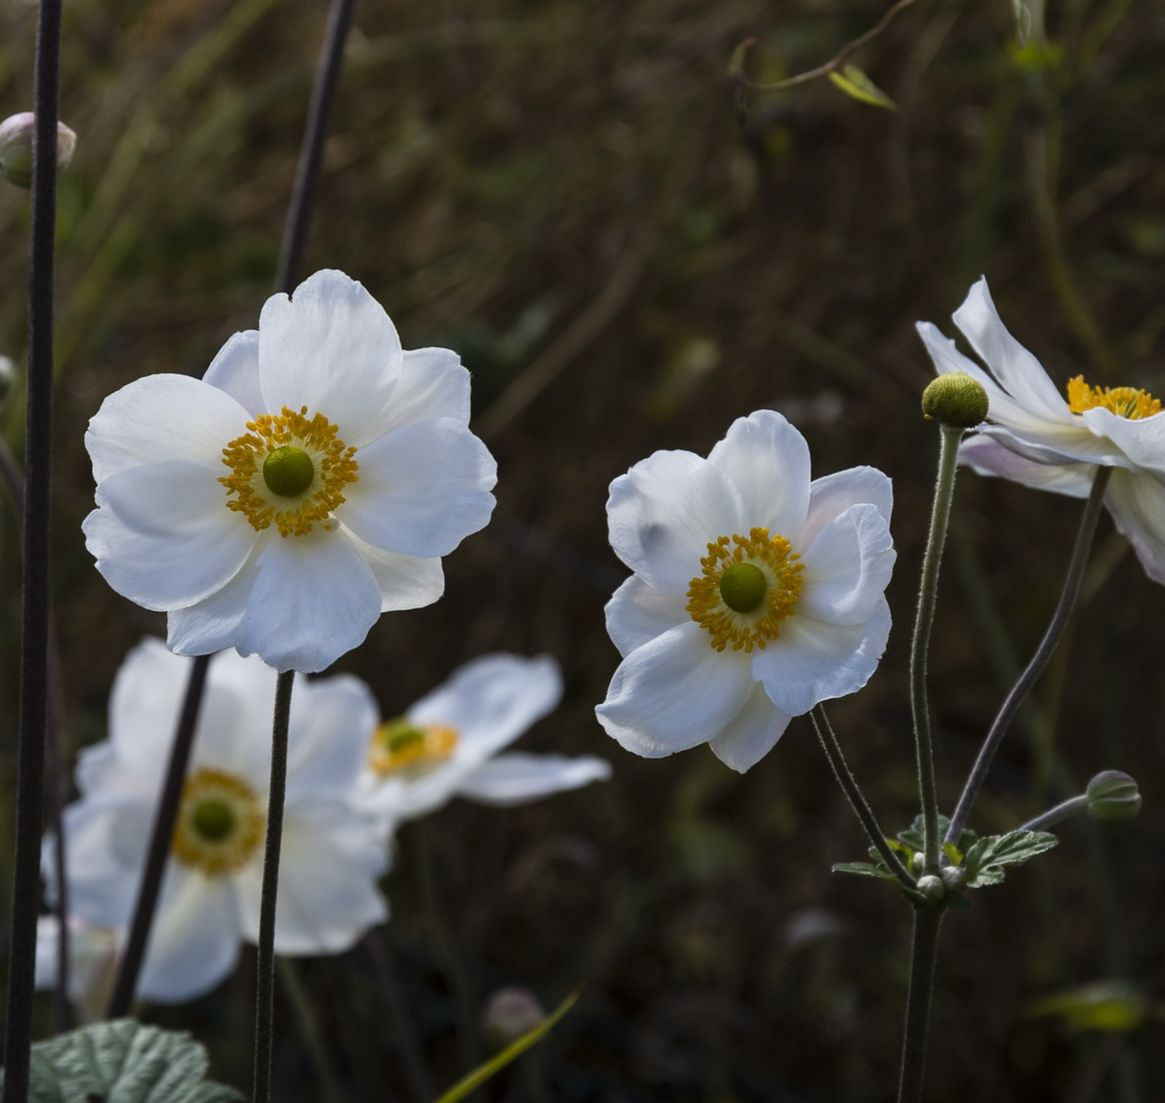 White Japanese Anemones bloom in the fall garden